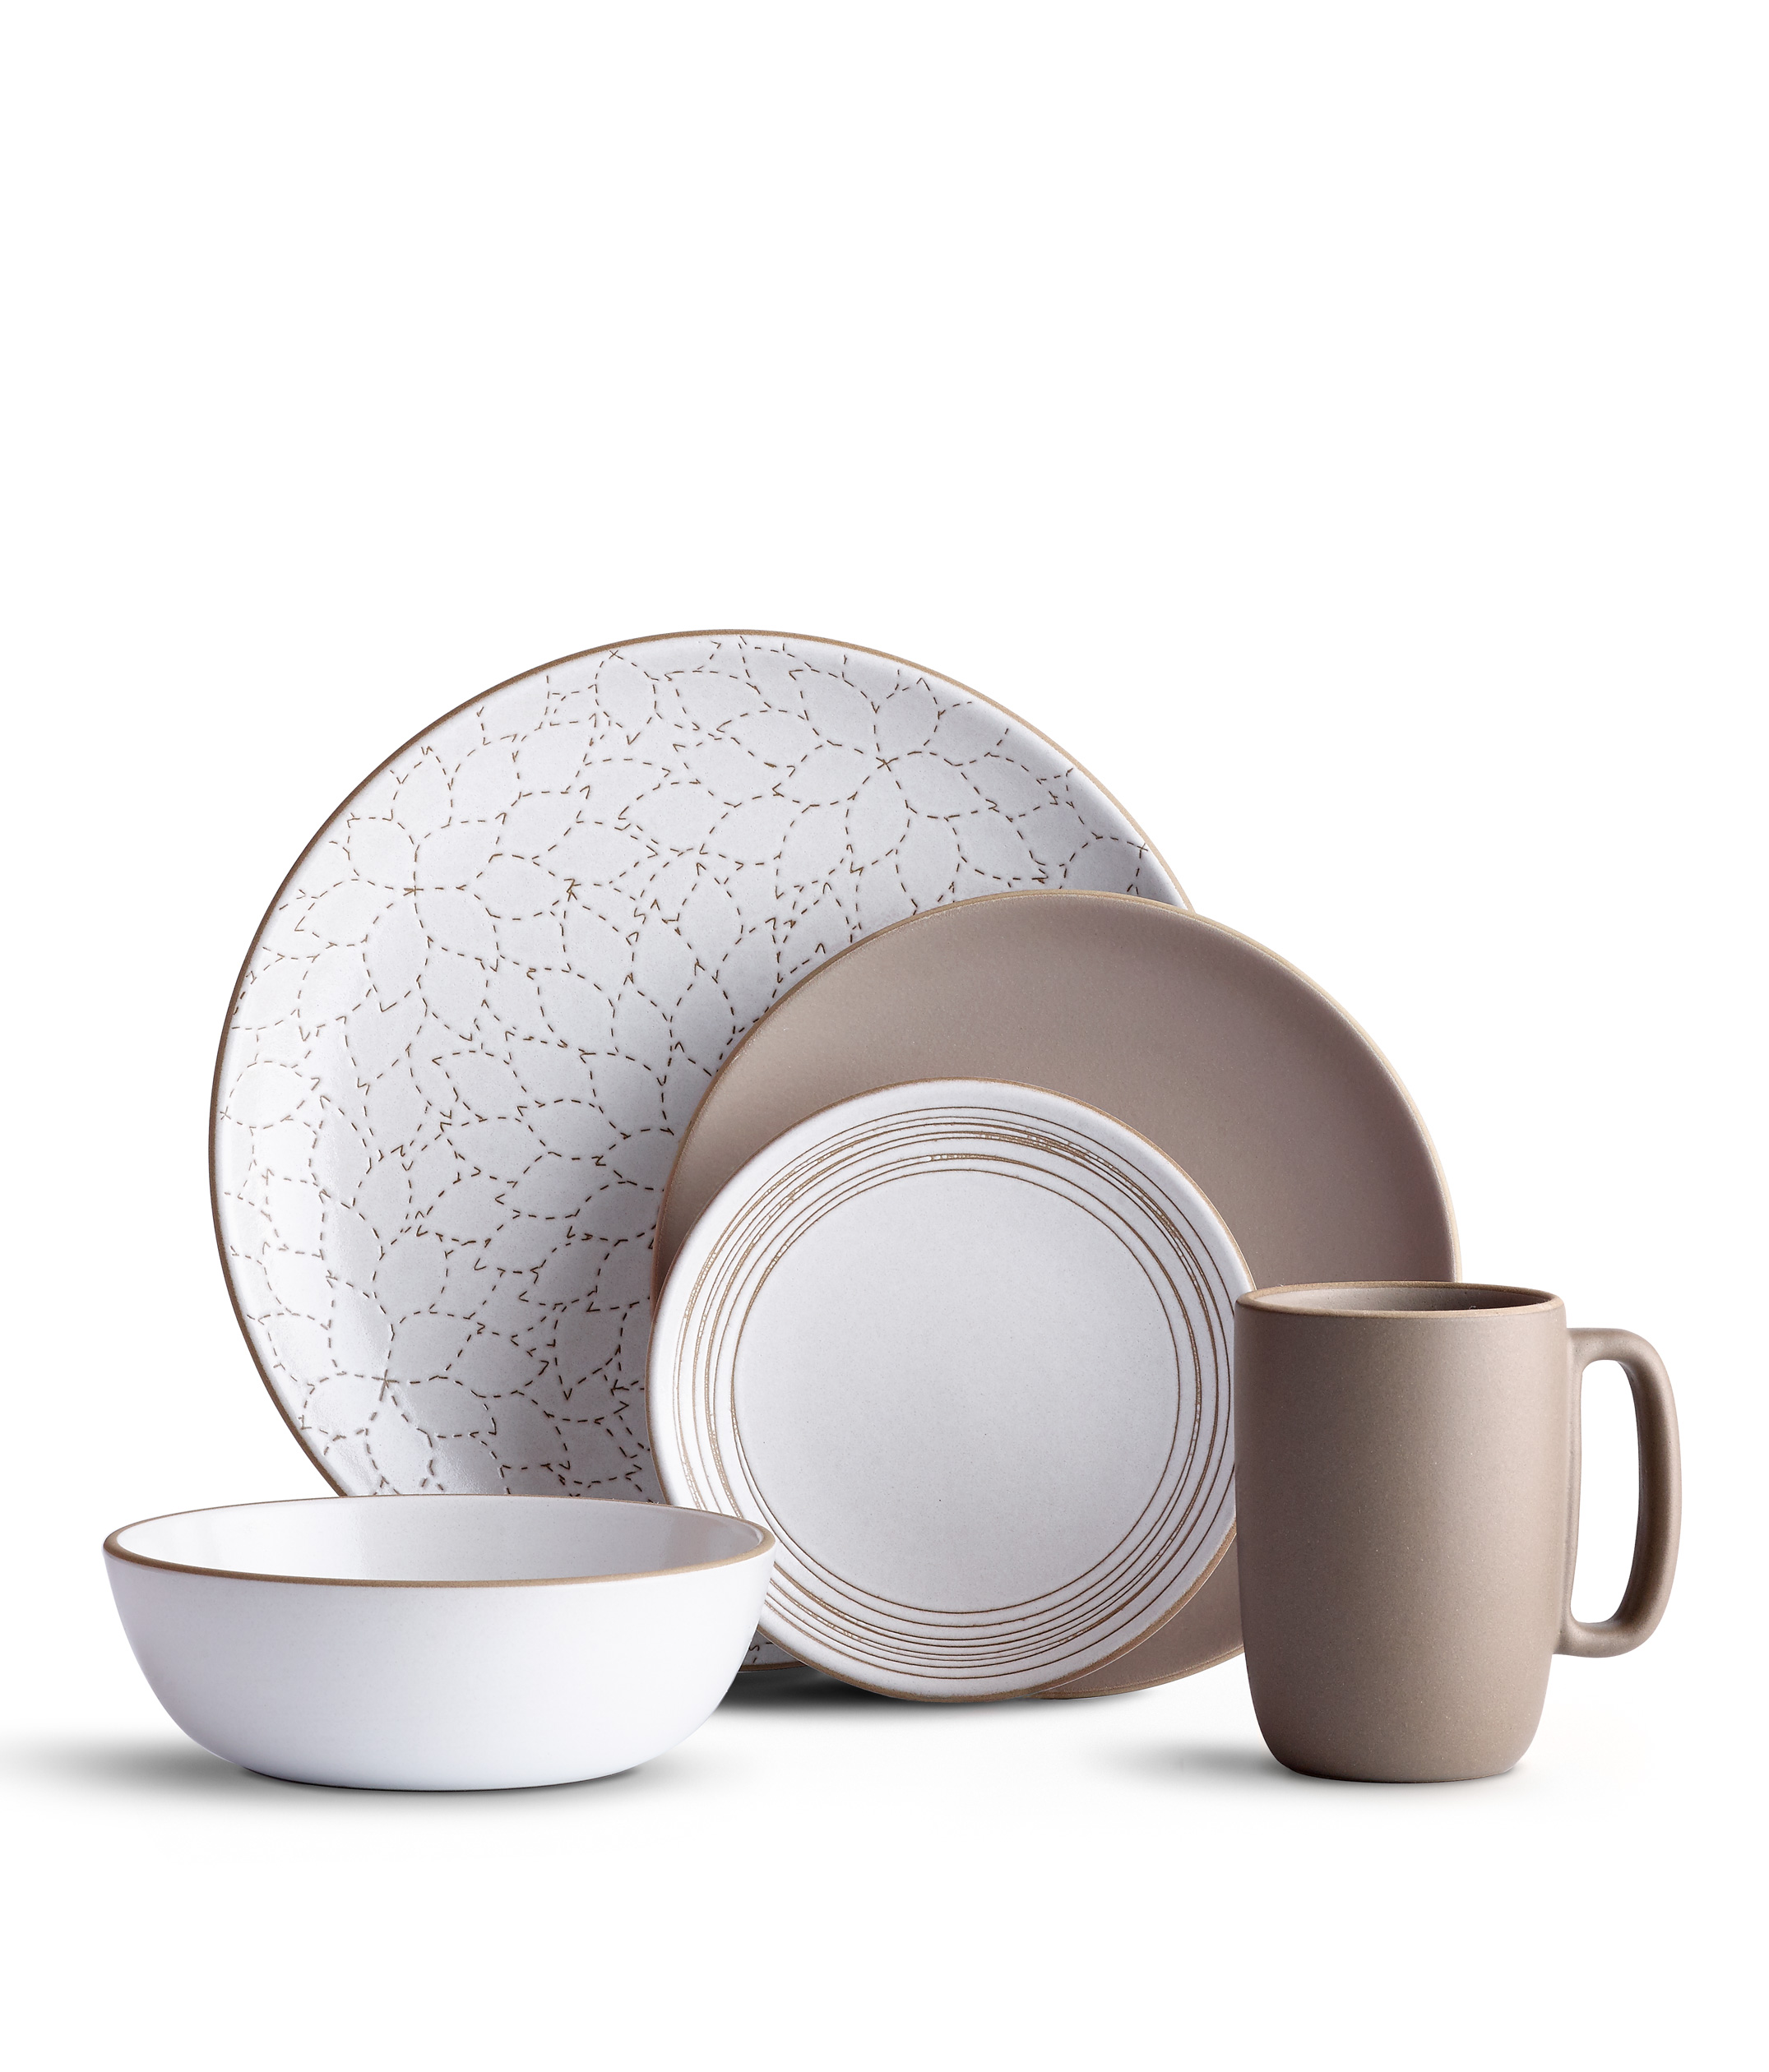 Crate and Barrel Dishes | Stoneware Dinnerware Sets | Dinnerware Sets Sale